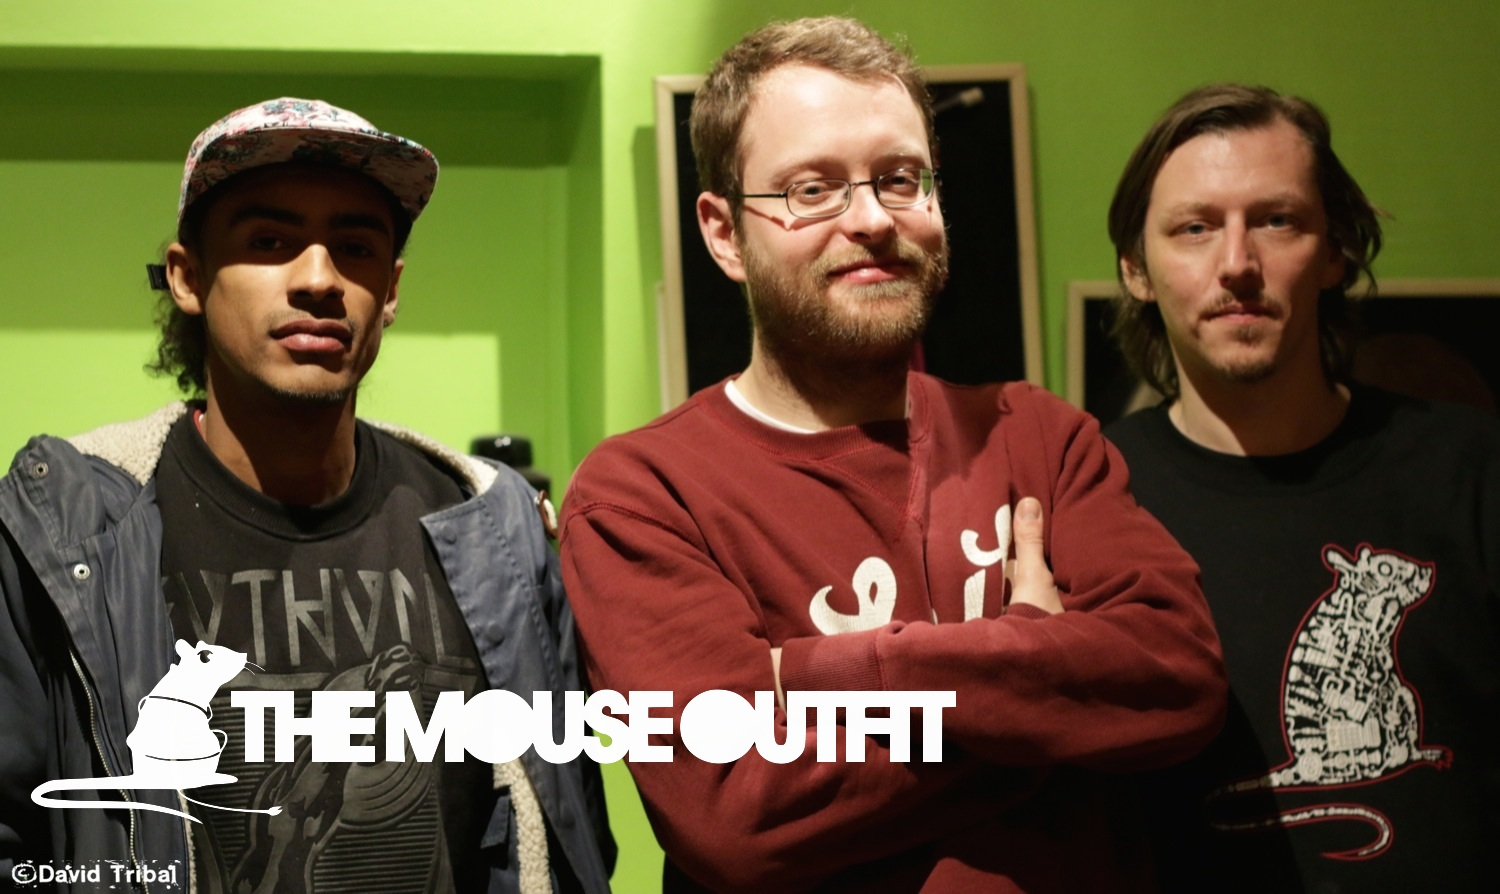 MouseOutfit-Band